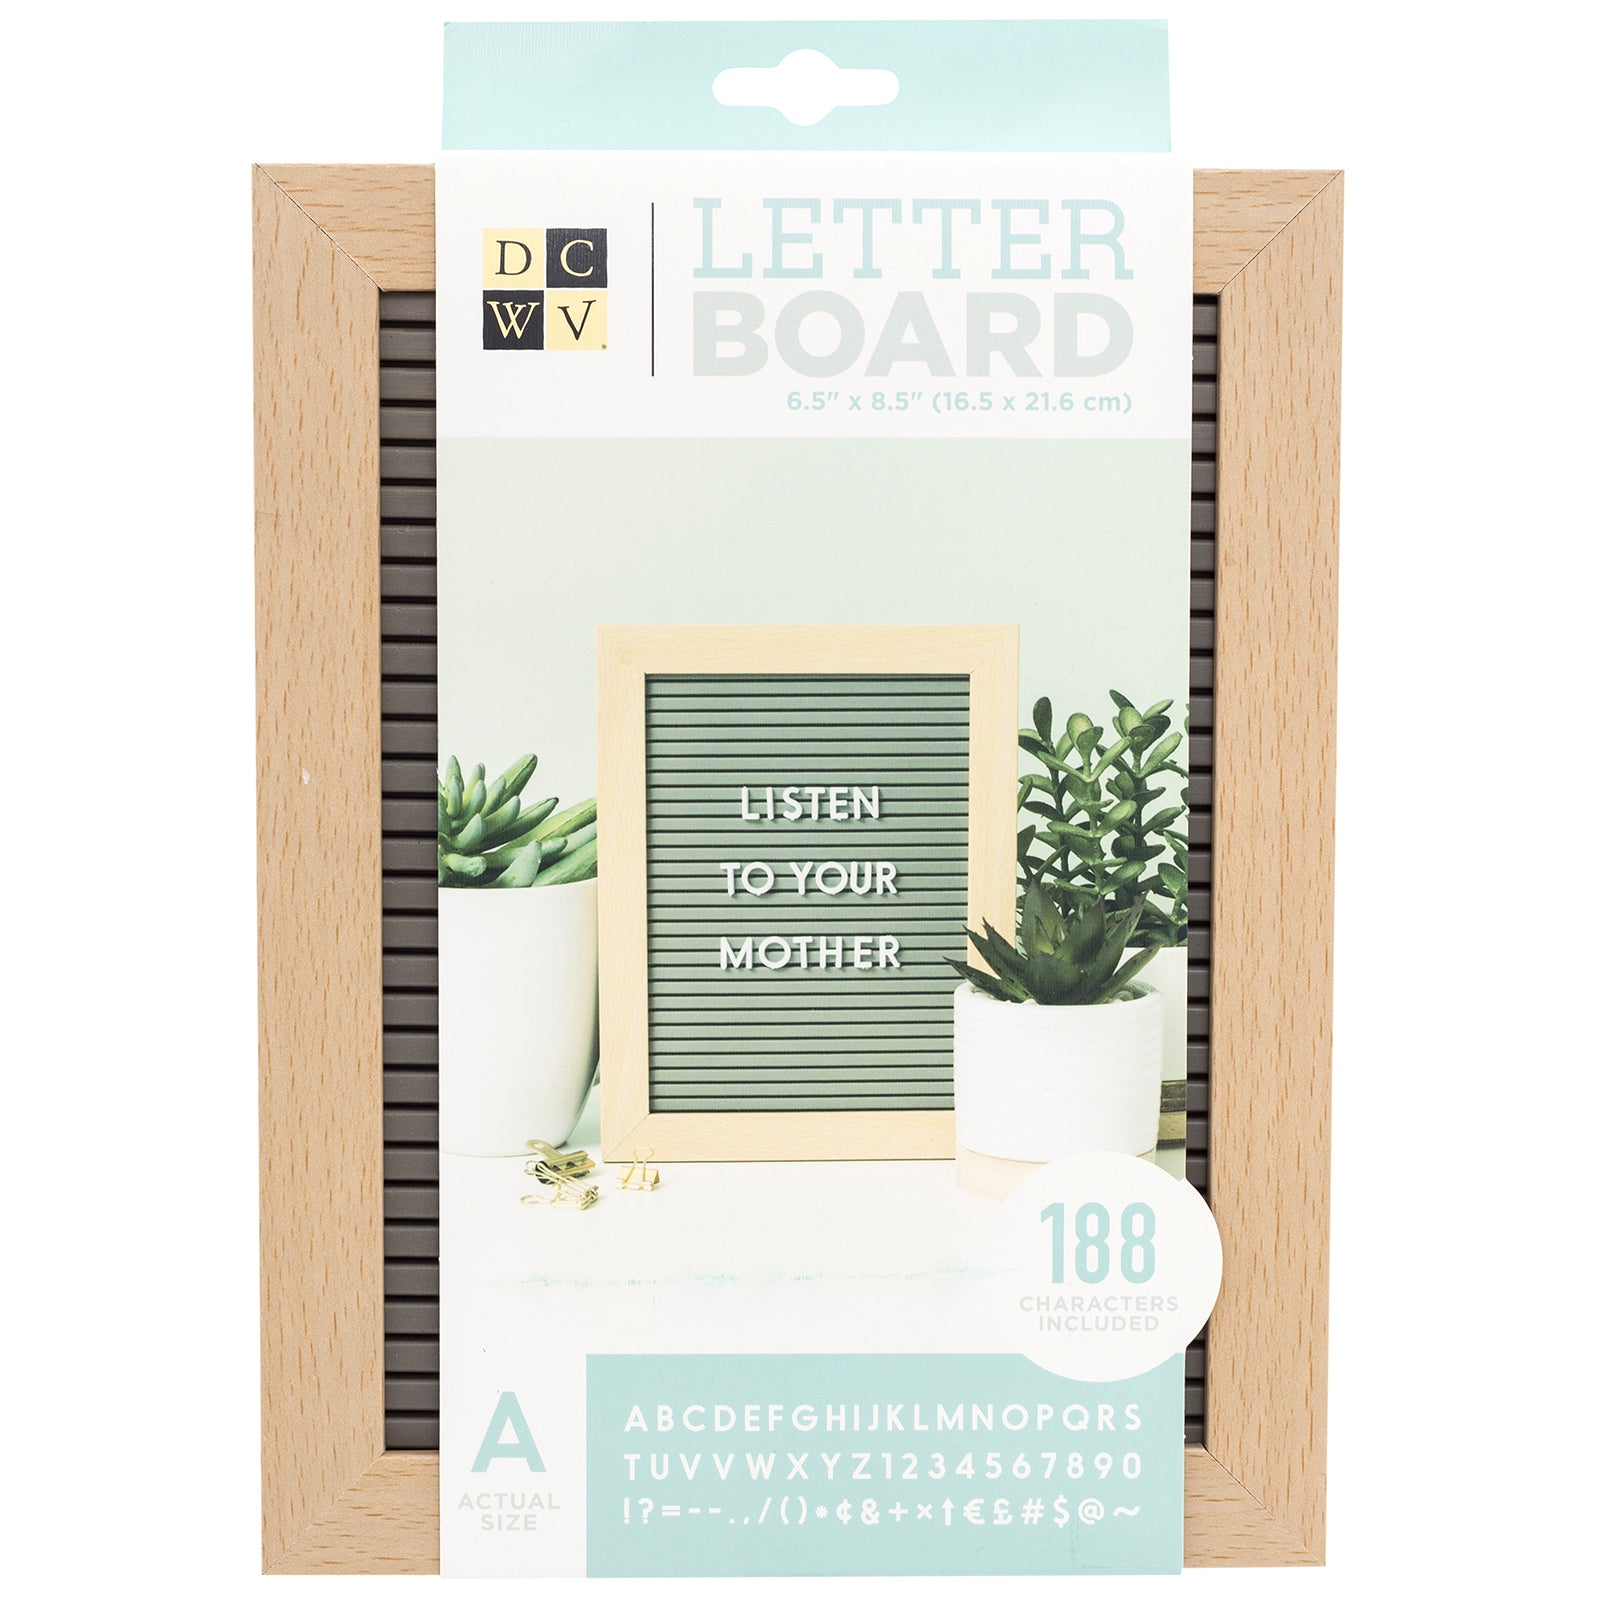 Letterboard Dcwv 5X7 Oakgrey with Light Wood Frame White letters (188 pieces)